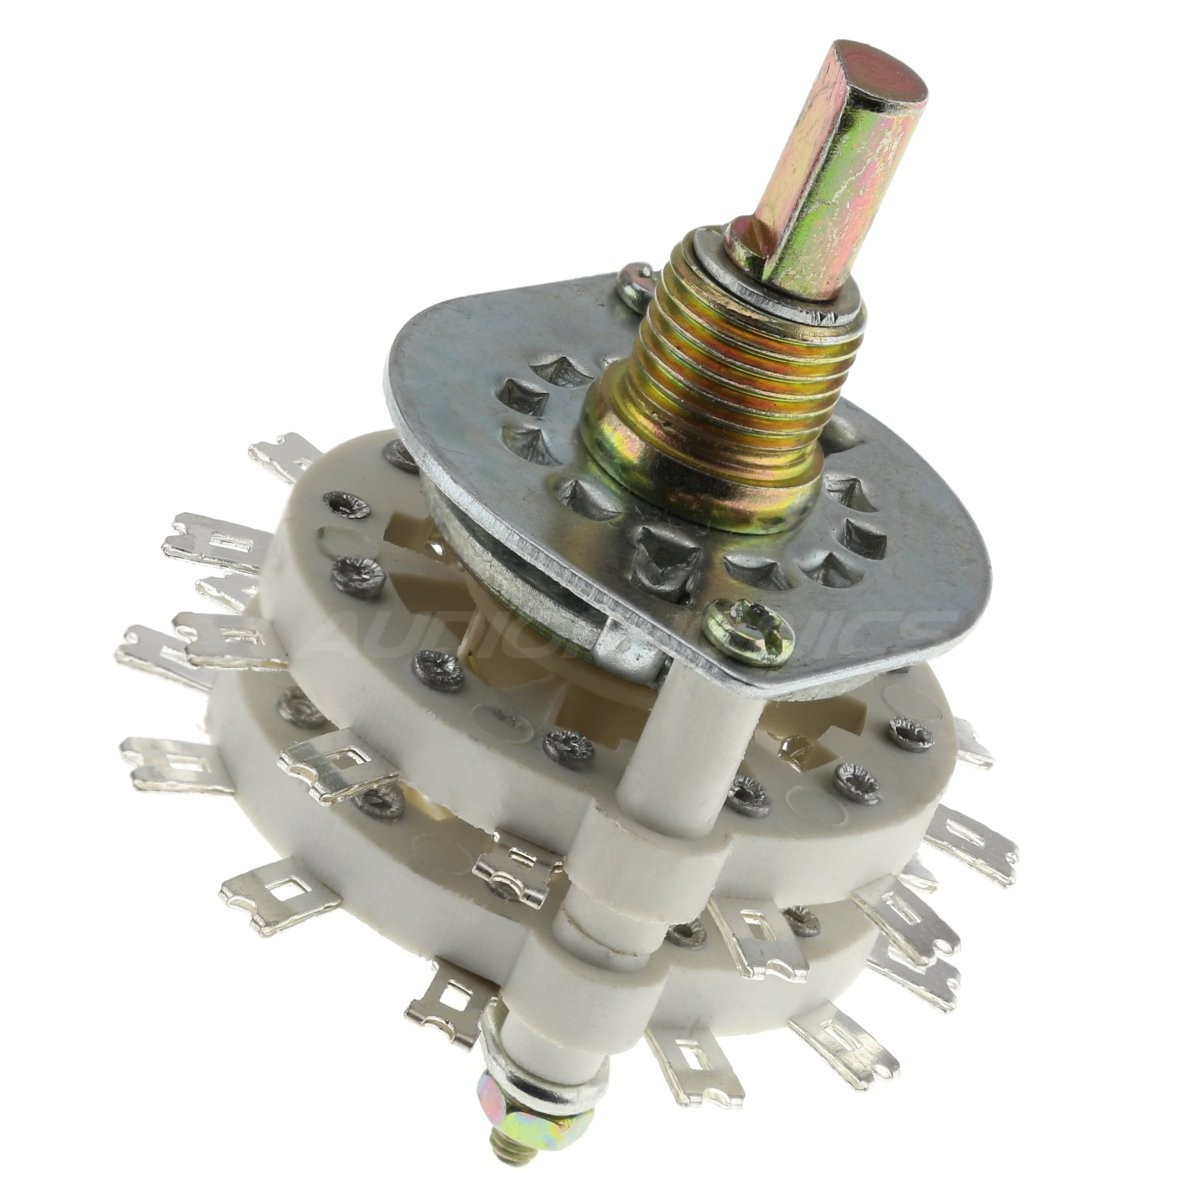 Selector 4 inputs 5 positions Ø6mm flat axis